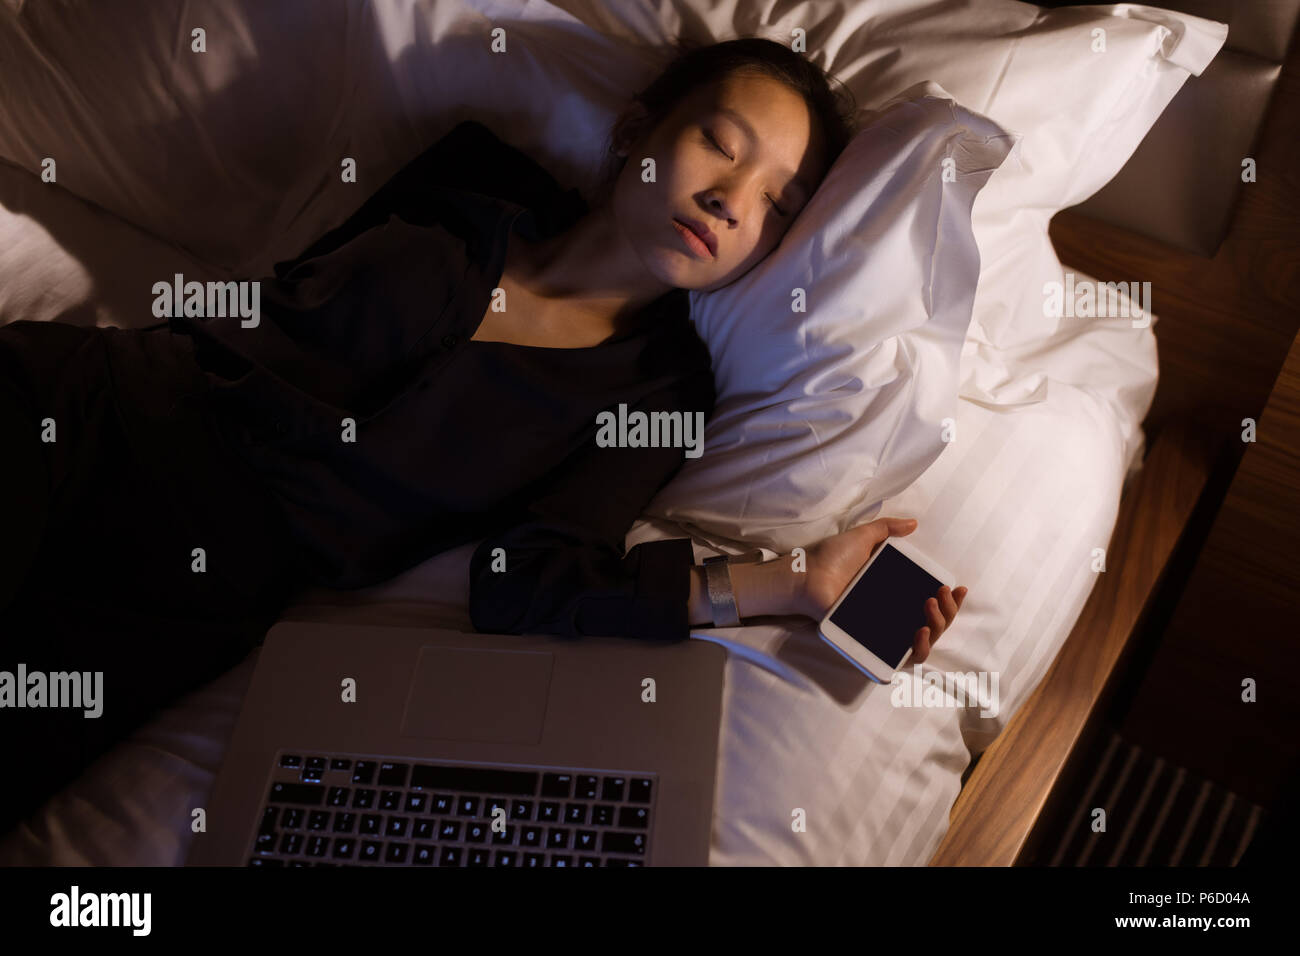 Tired woman sleeping with laptop and mobile pone on bed - Stock Image